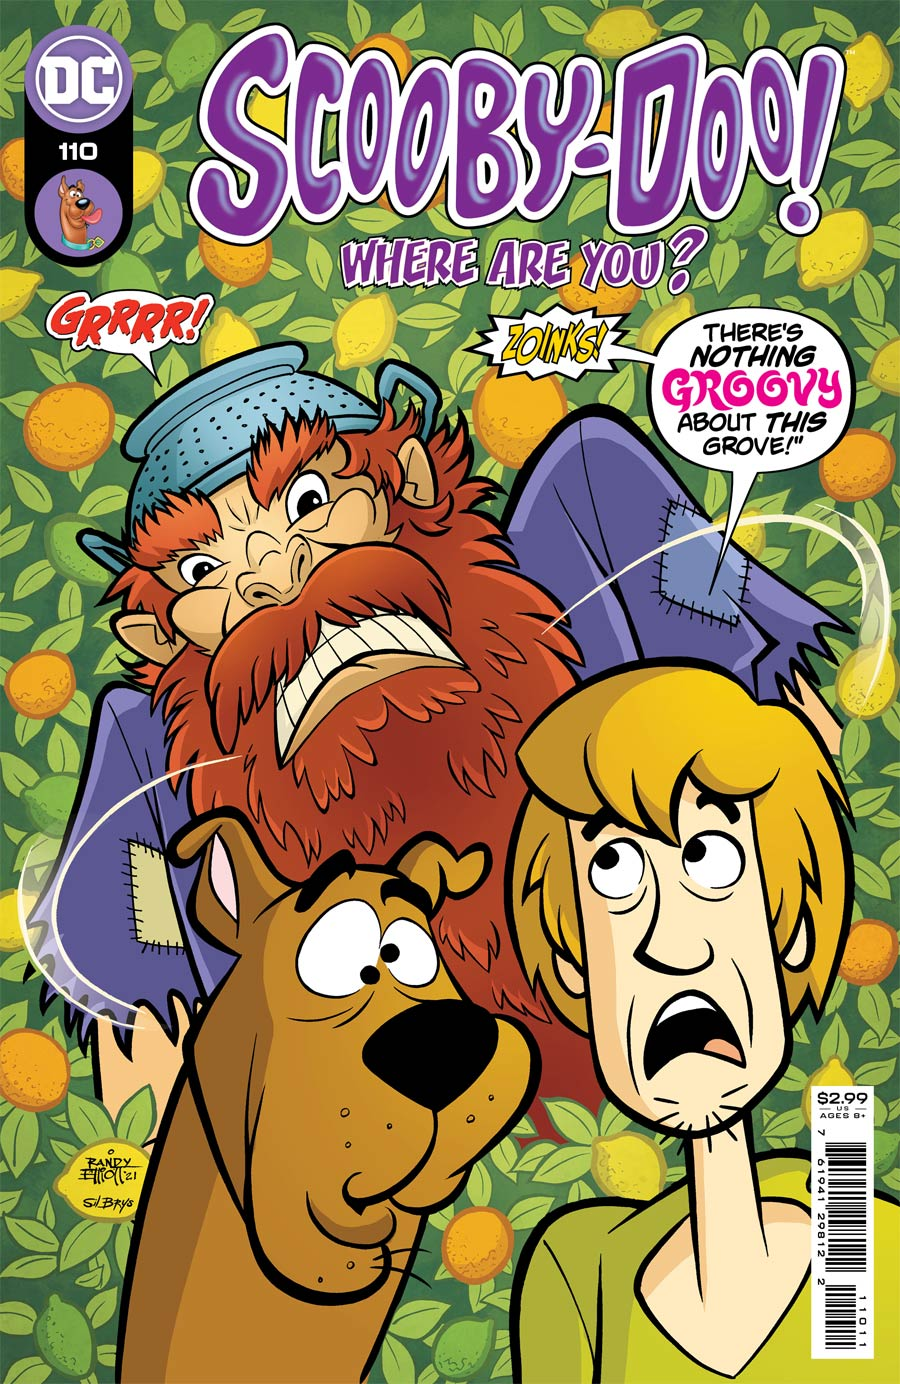 Scooby-Doo Where Are You #110